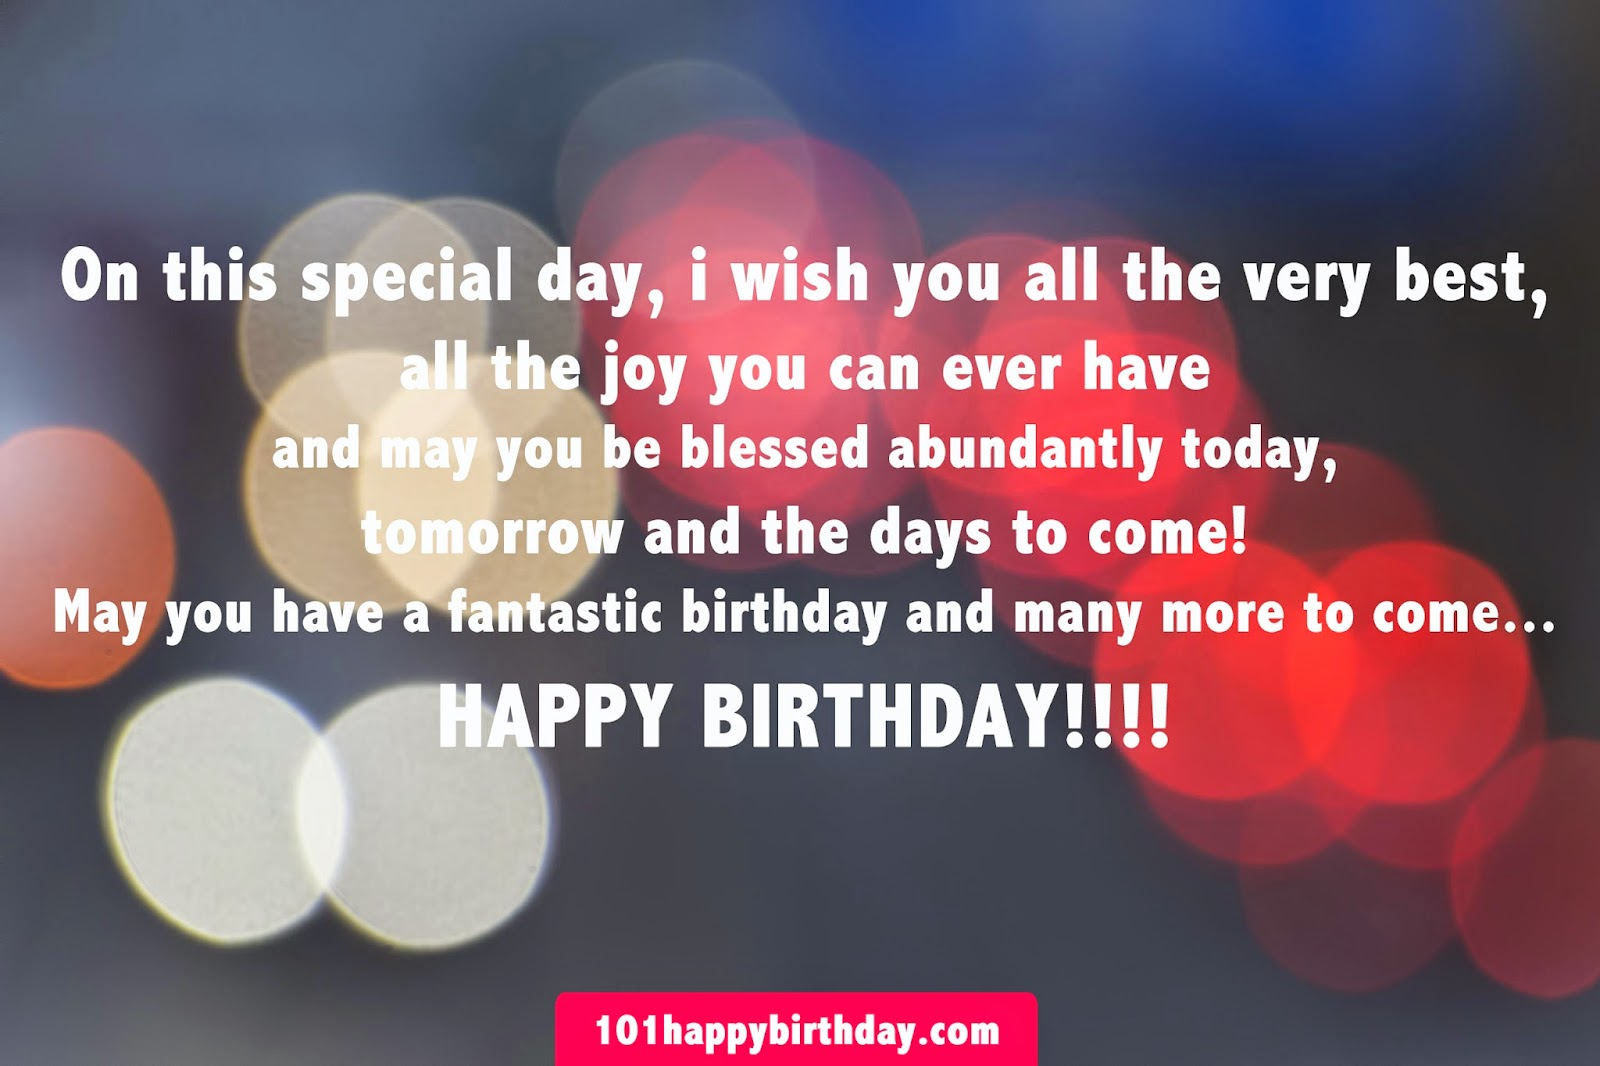 Wishing You Many More Birthdays To Come